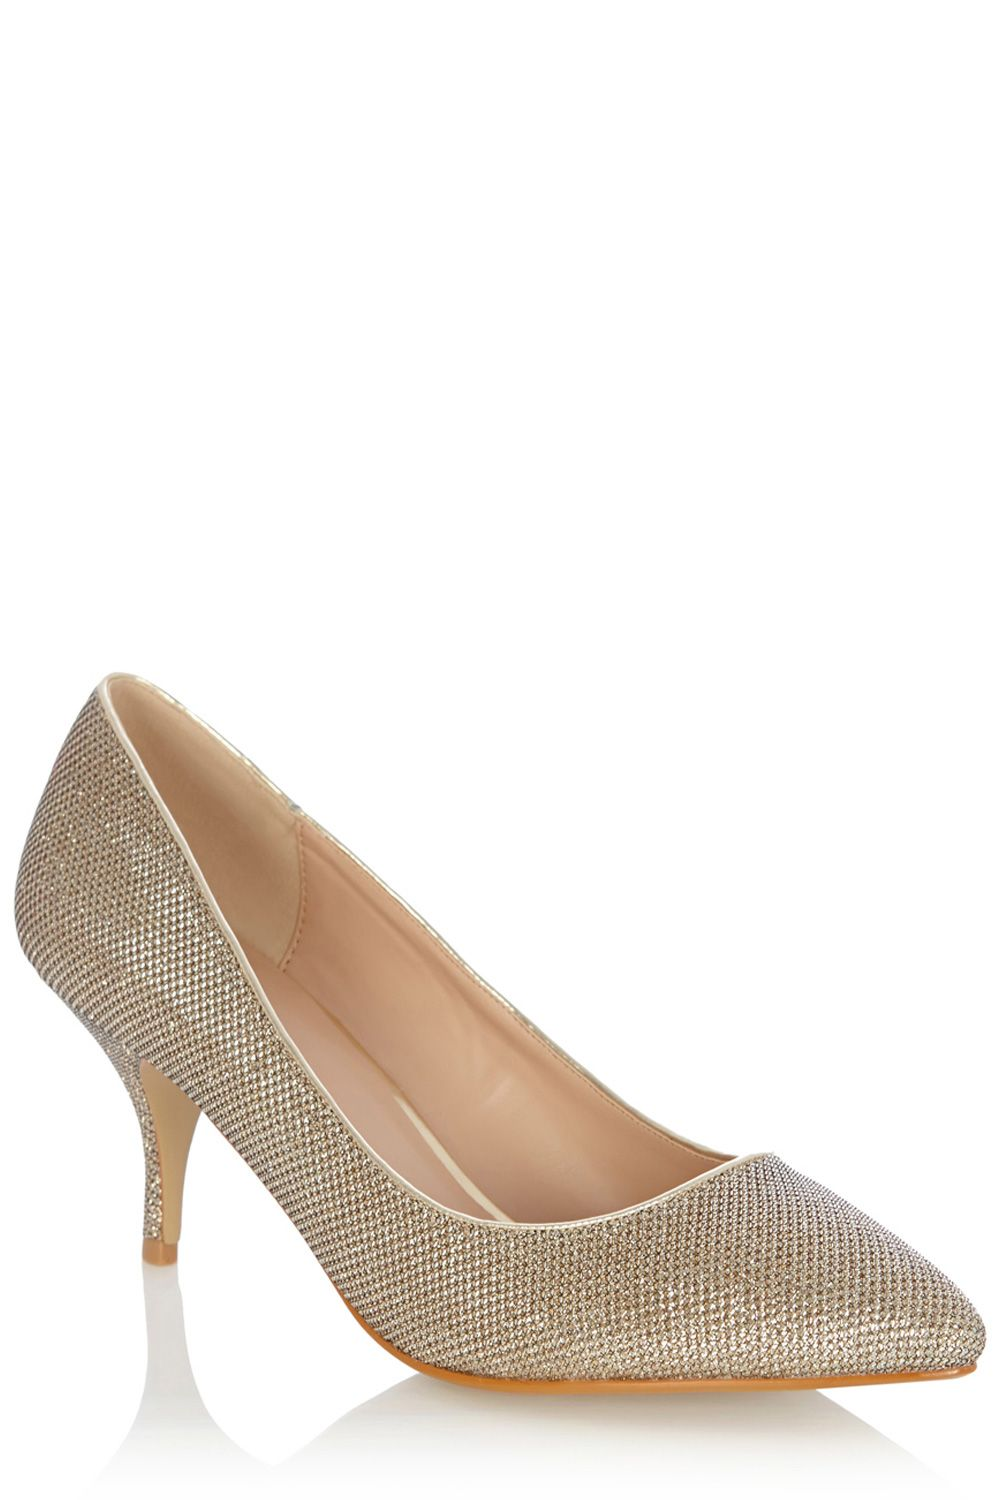 Cara sparkle fabric court shoes